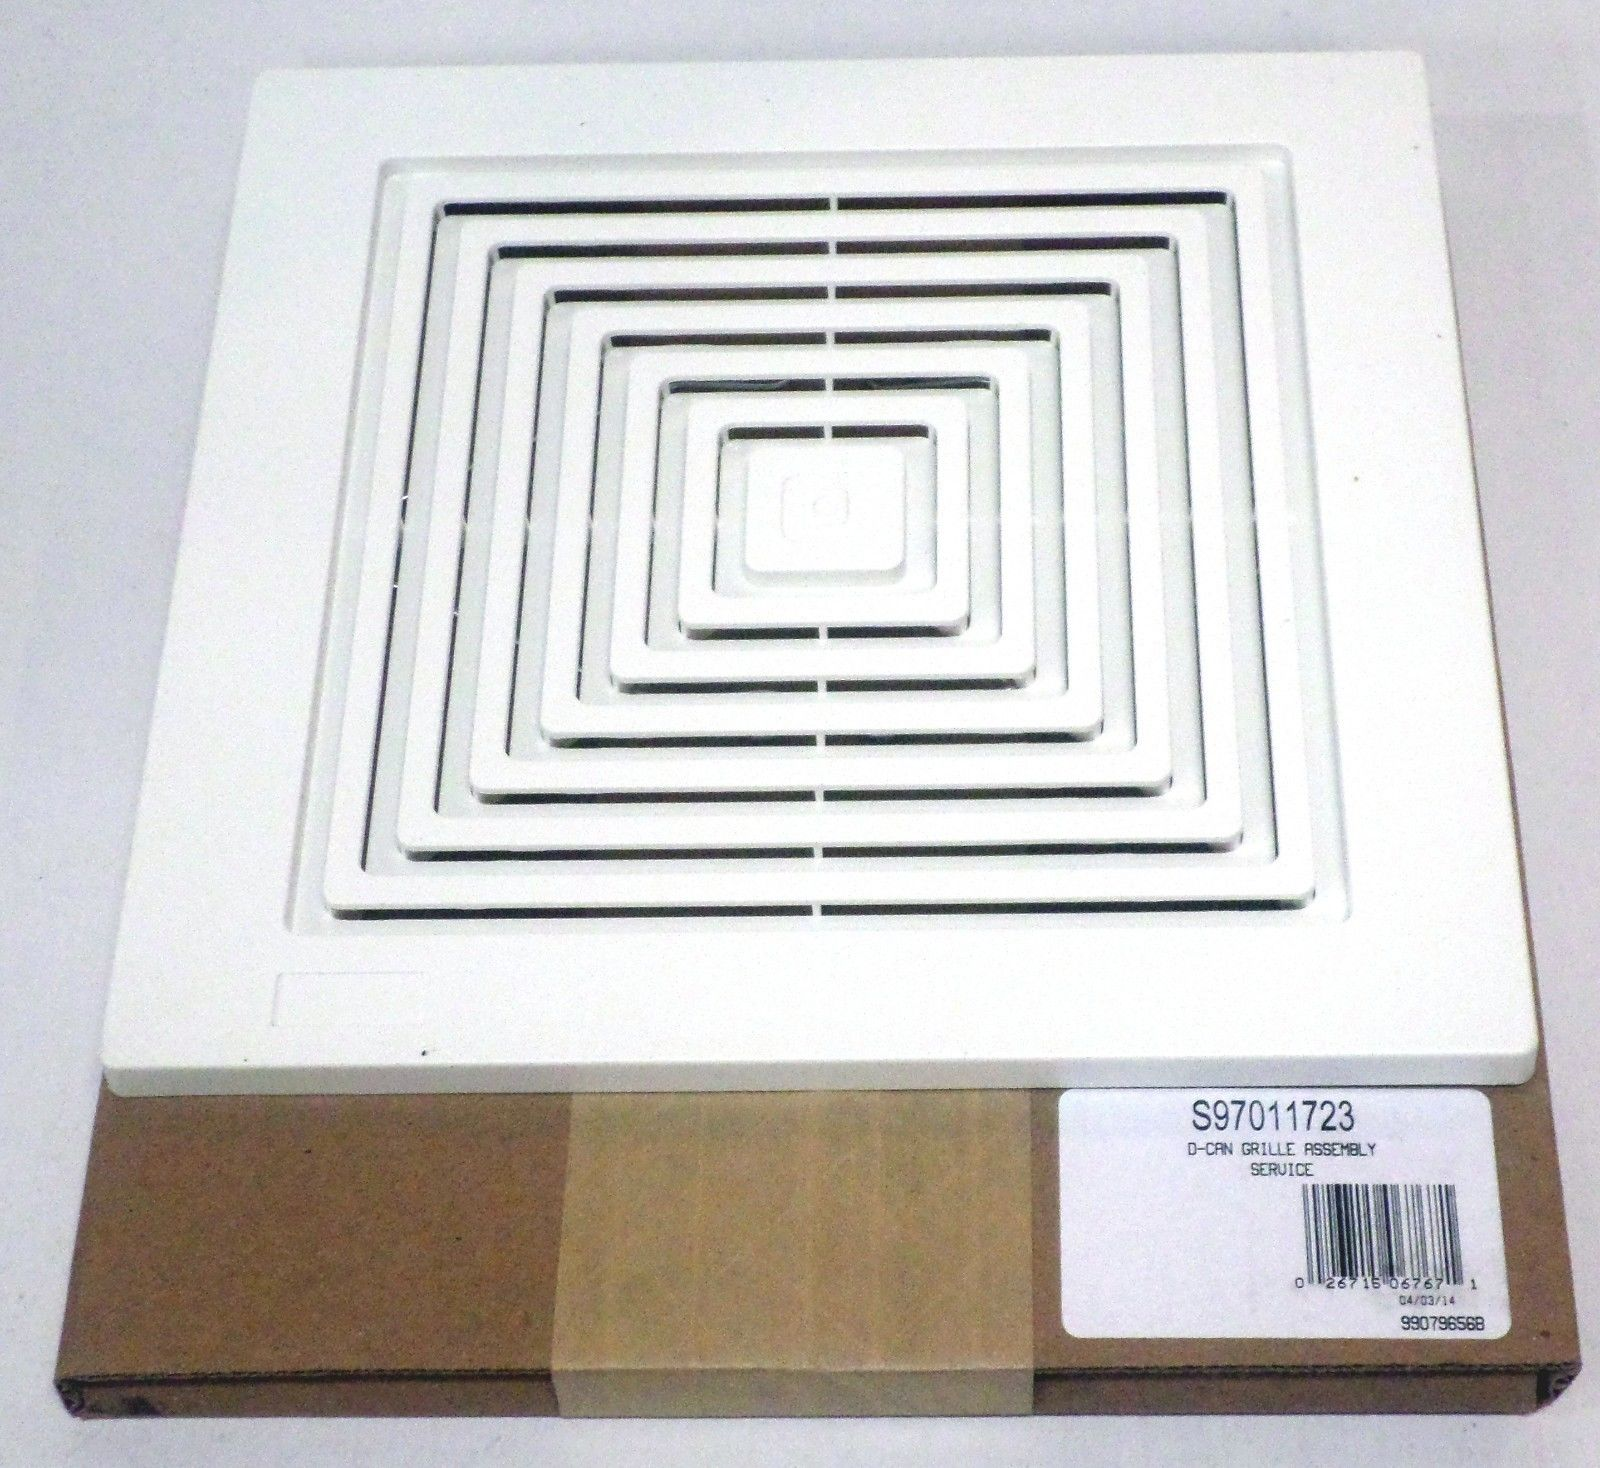 Details About Broan Nutone 97011723 Bath Bathroom Ceiling Fan Grille Grill Cover Plastic White